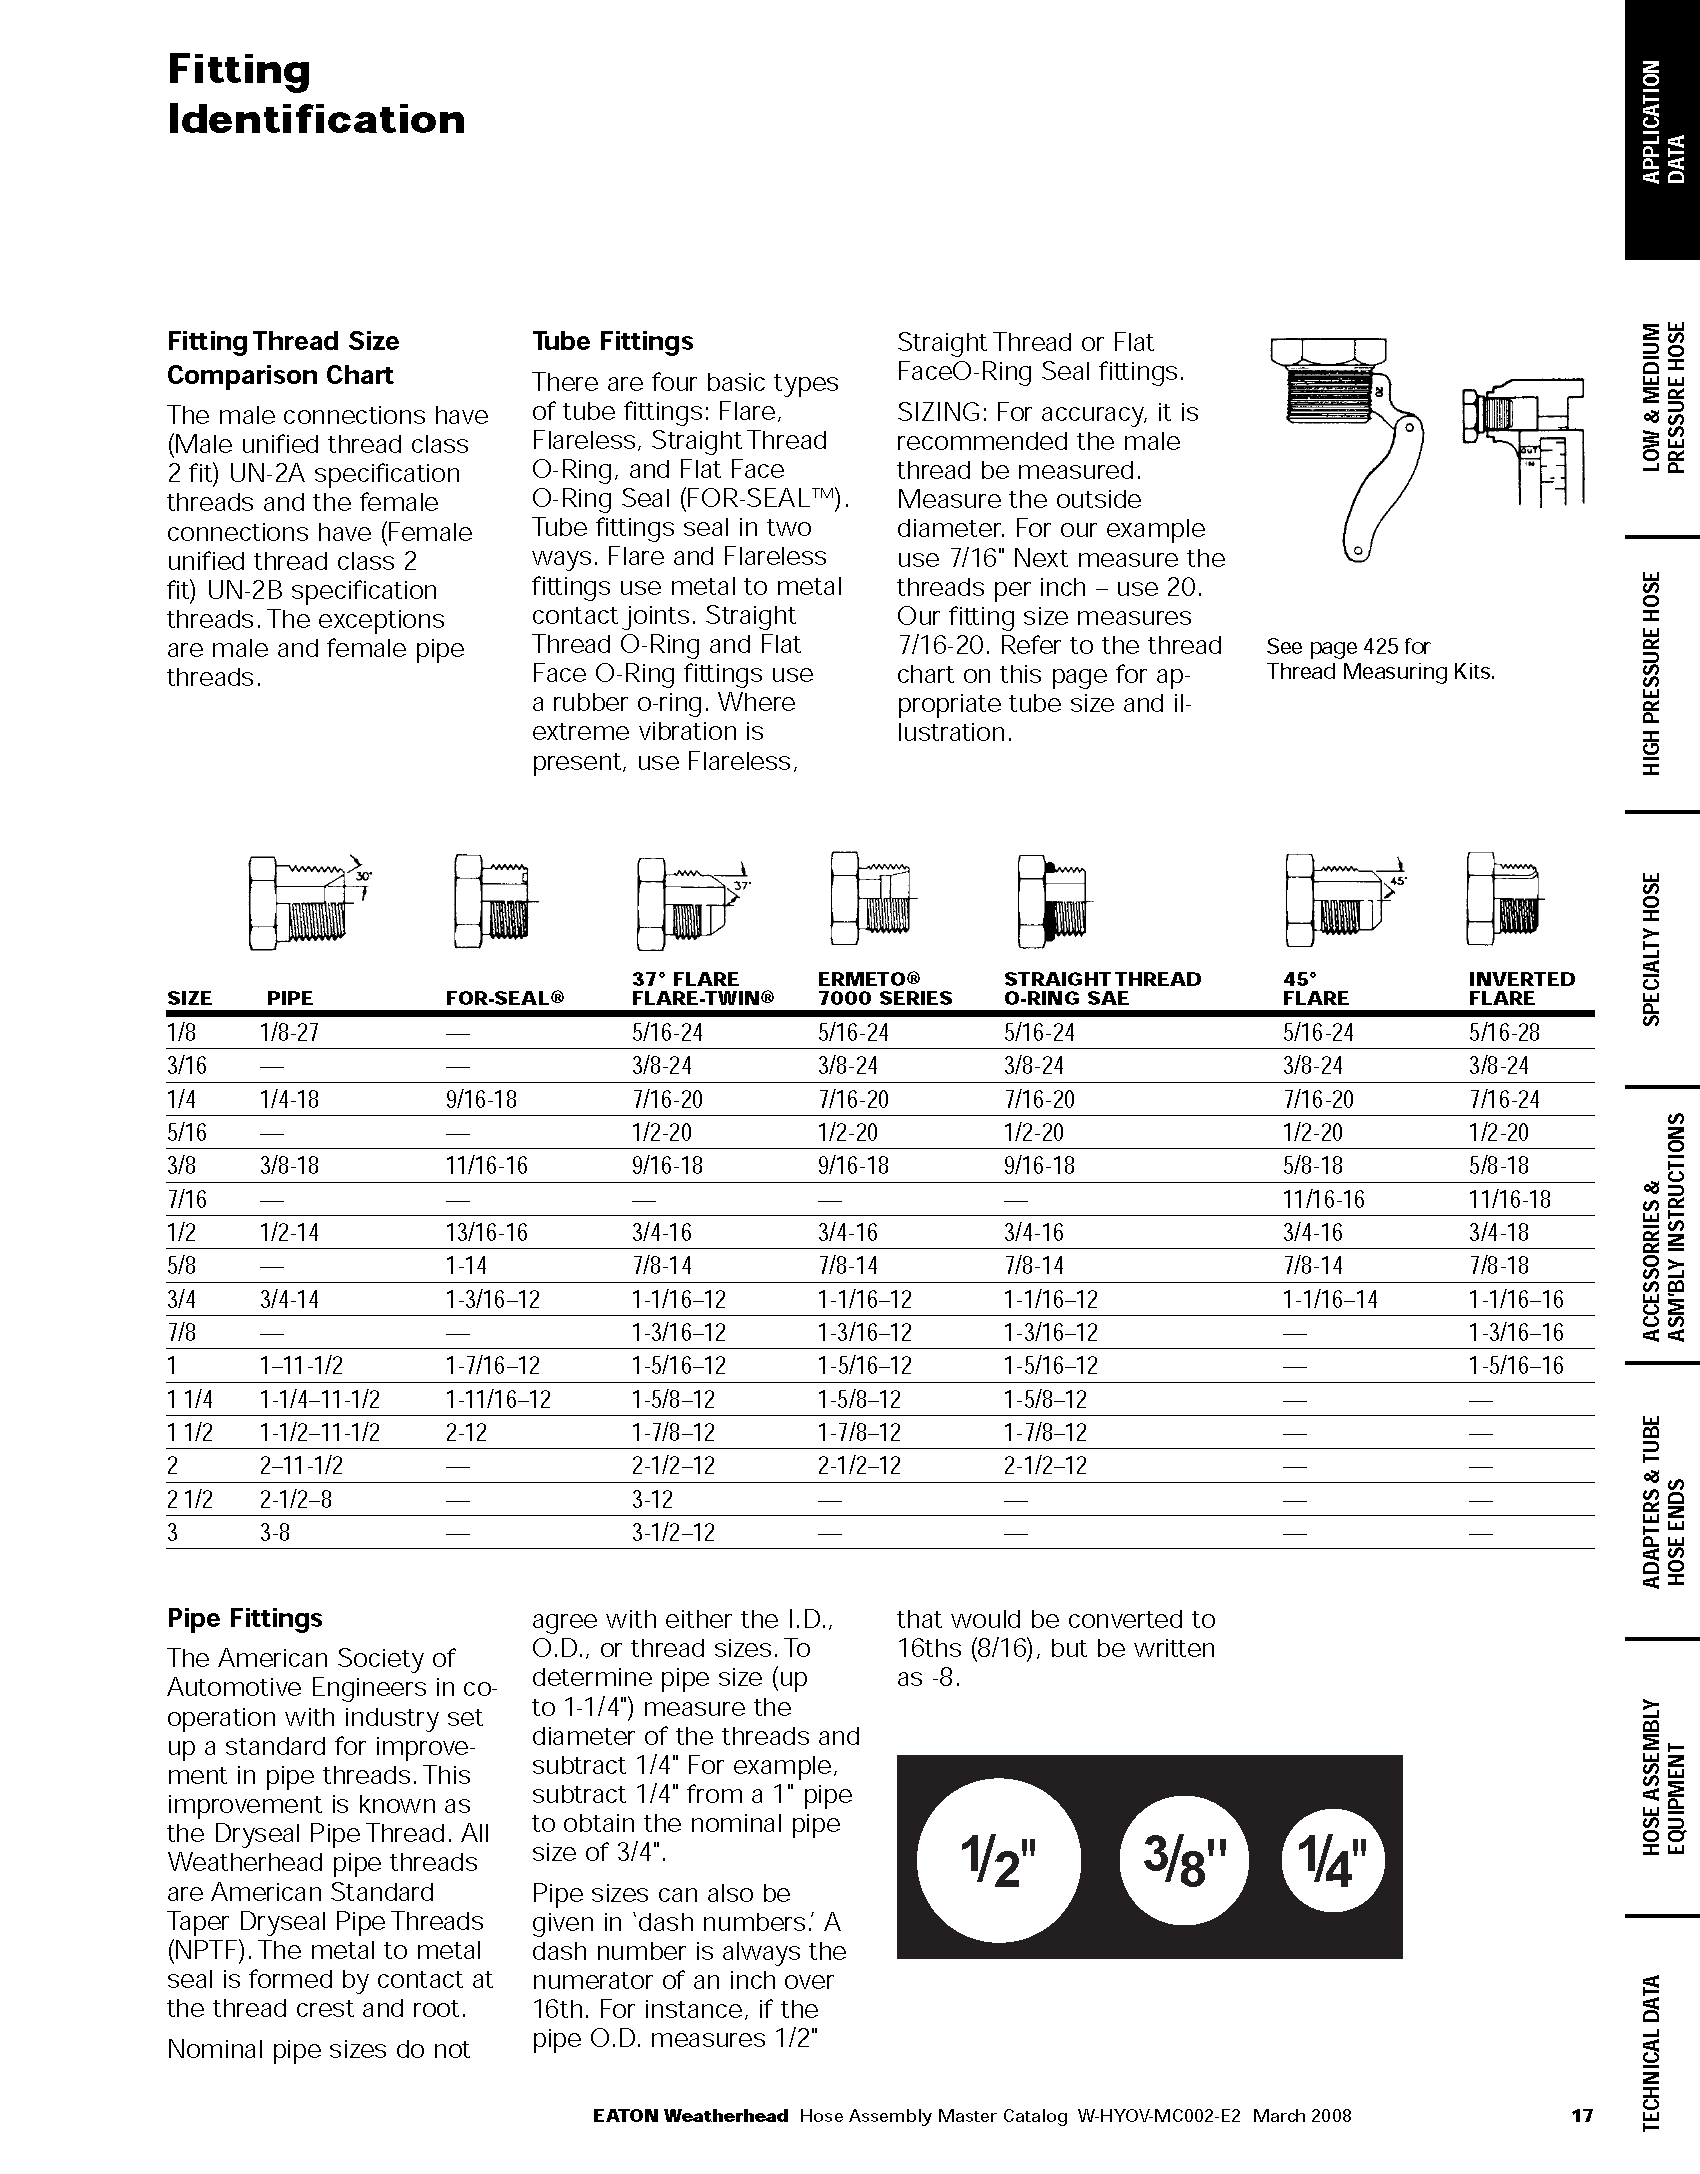 Hose selection guide Page 2